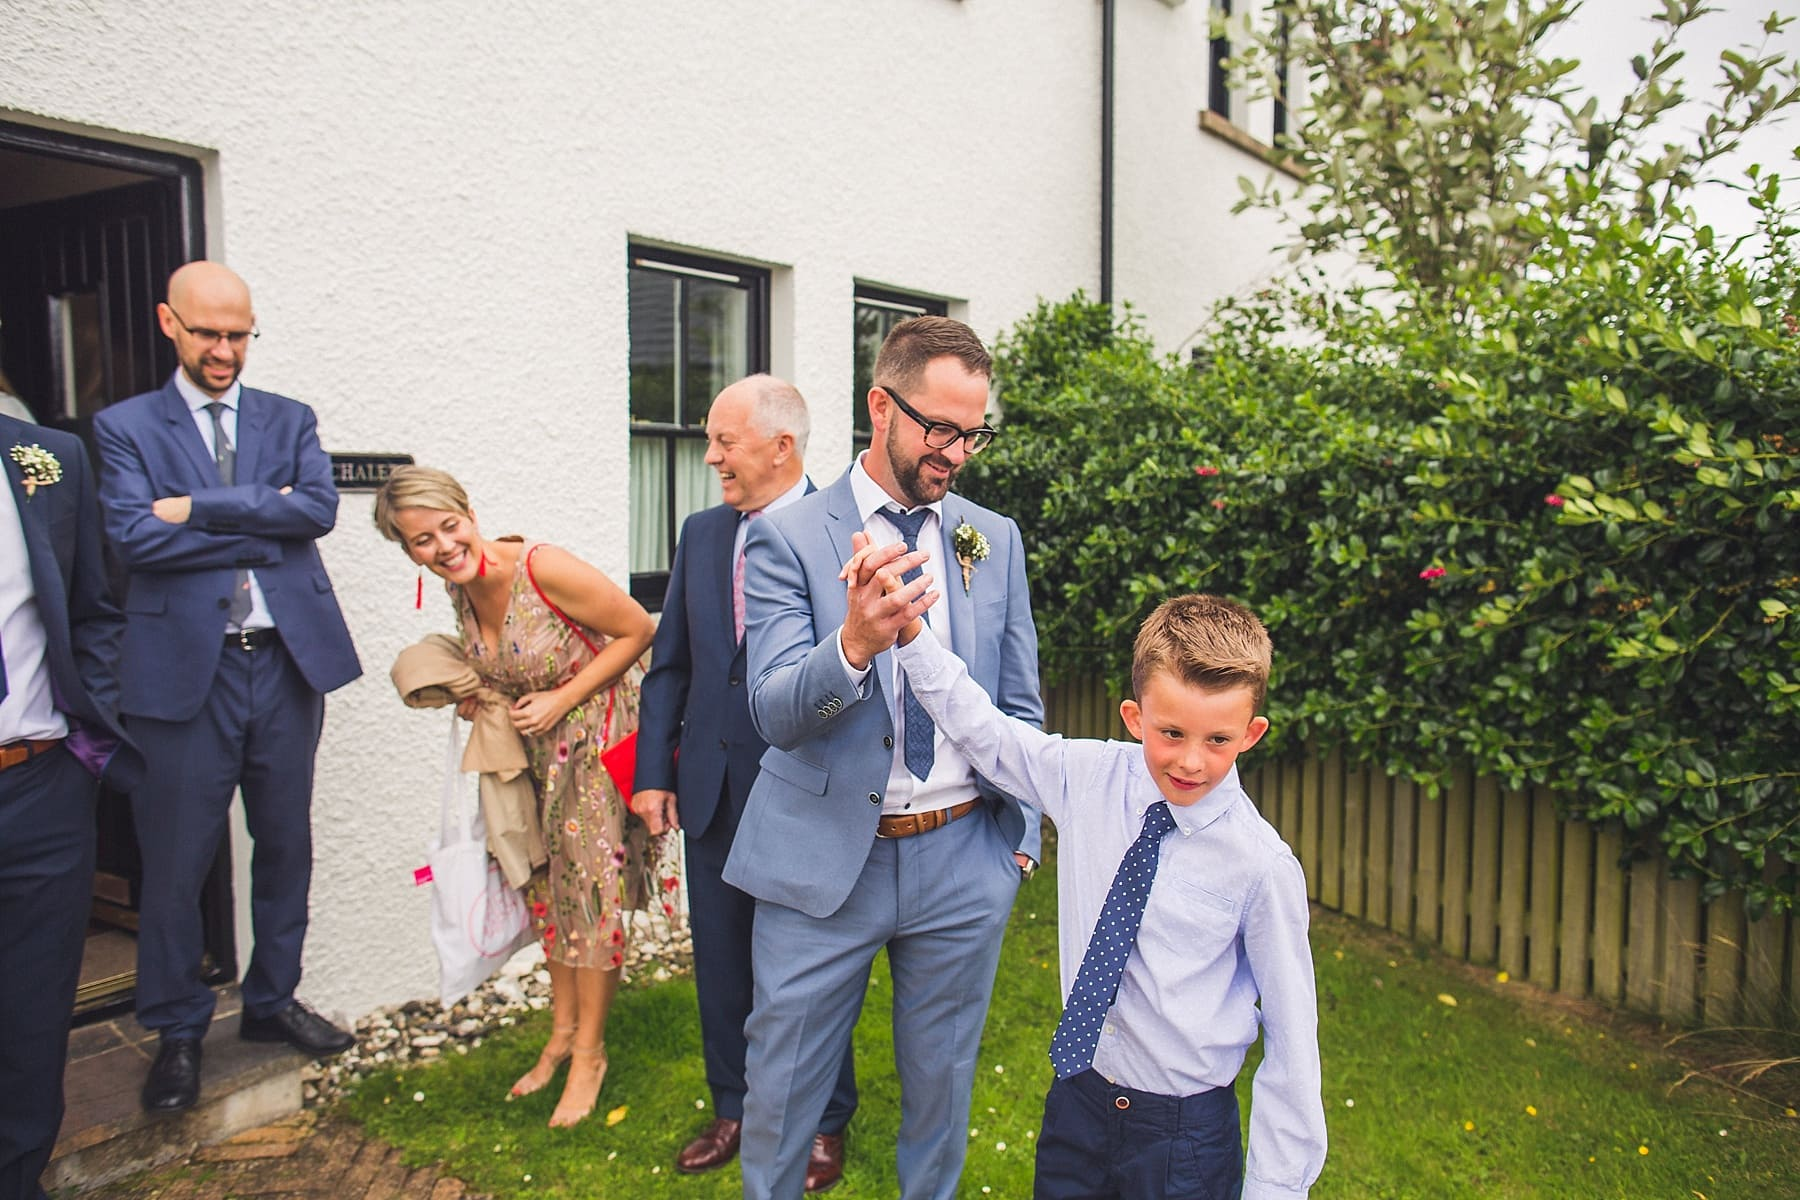 mcshane glen cottages wedding,marquee wedding north coast,northern ireland wedding photographer,one fab day,wedding inspiration,